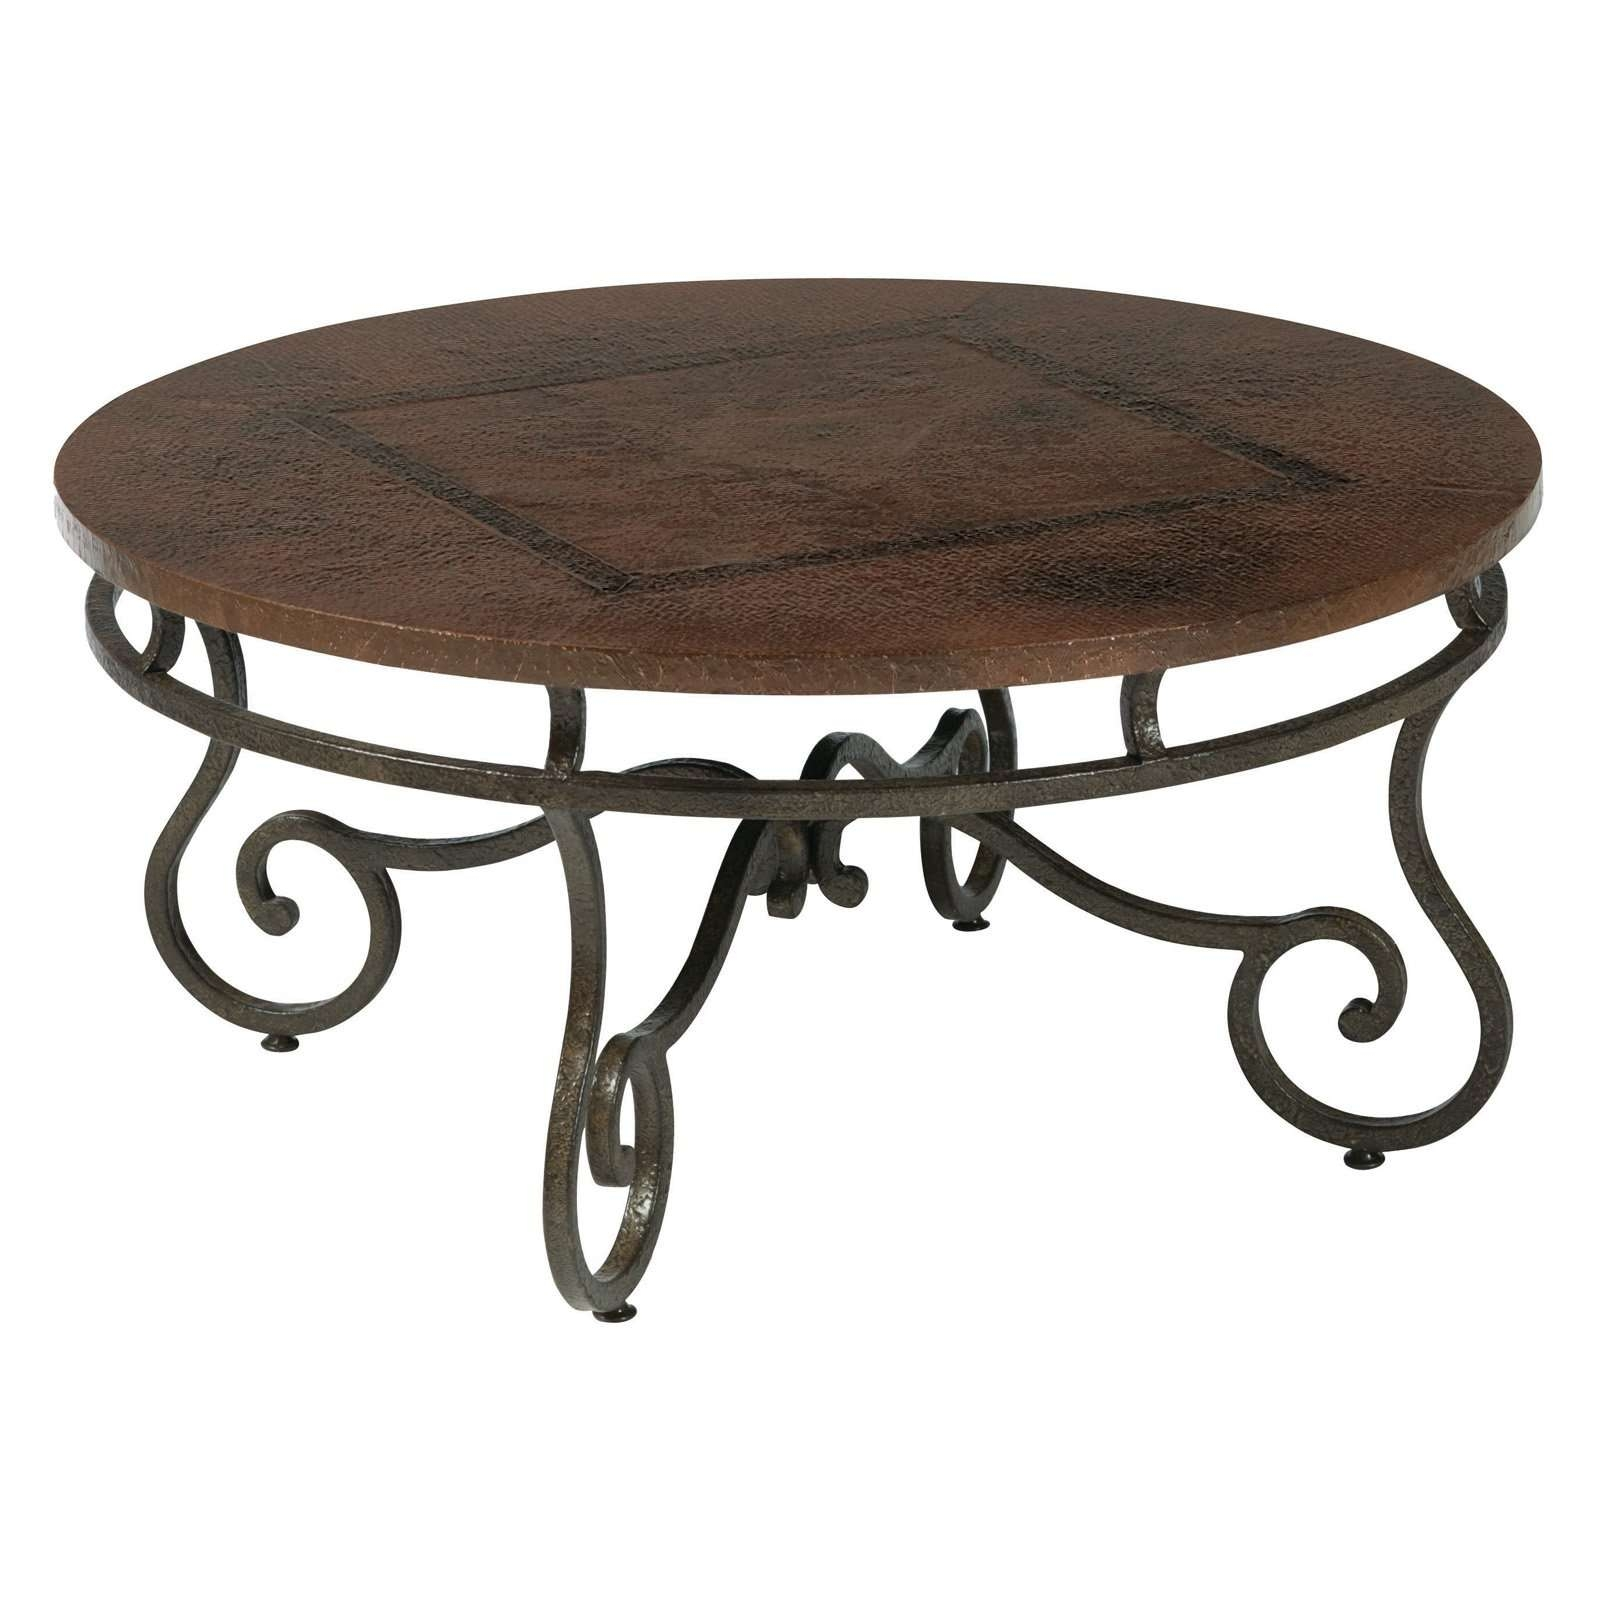 Most Recently Released Glass And Black Metal Coffee Table Within Old And Vintage Round Coffee Table With Wood Top Made From (View 19 of 20)